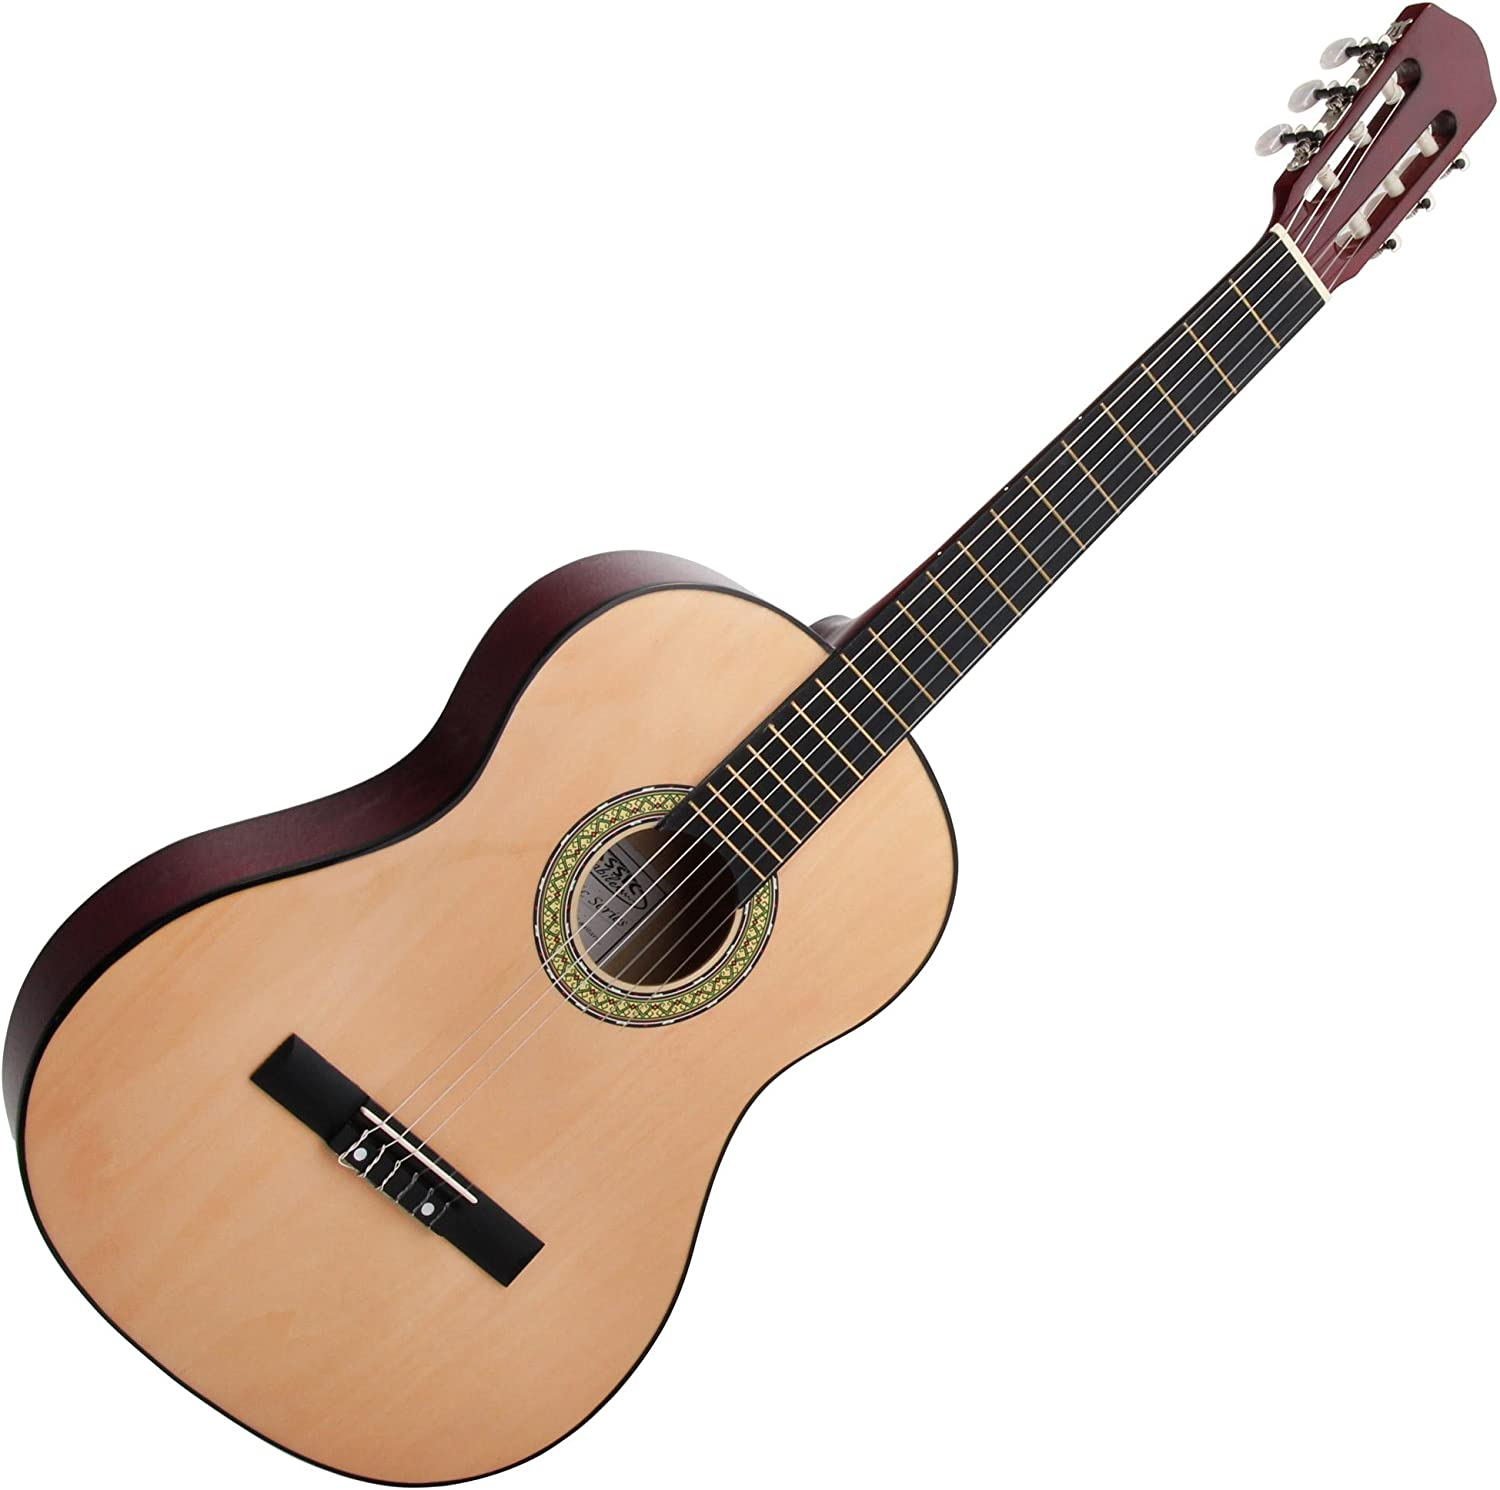 Classic Cantabile AS-651 Guitarra clásica tamaño 4/4 PACK: Amazon ...